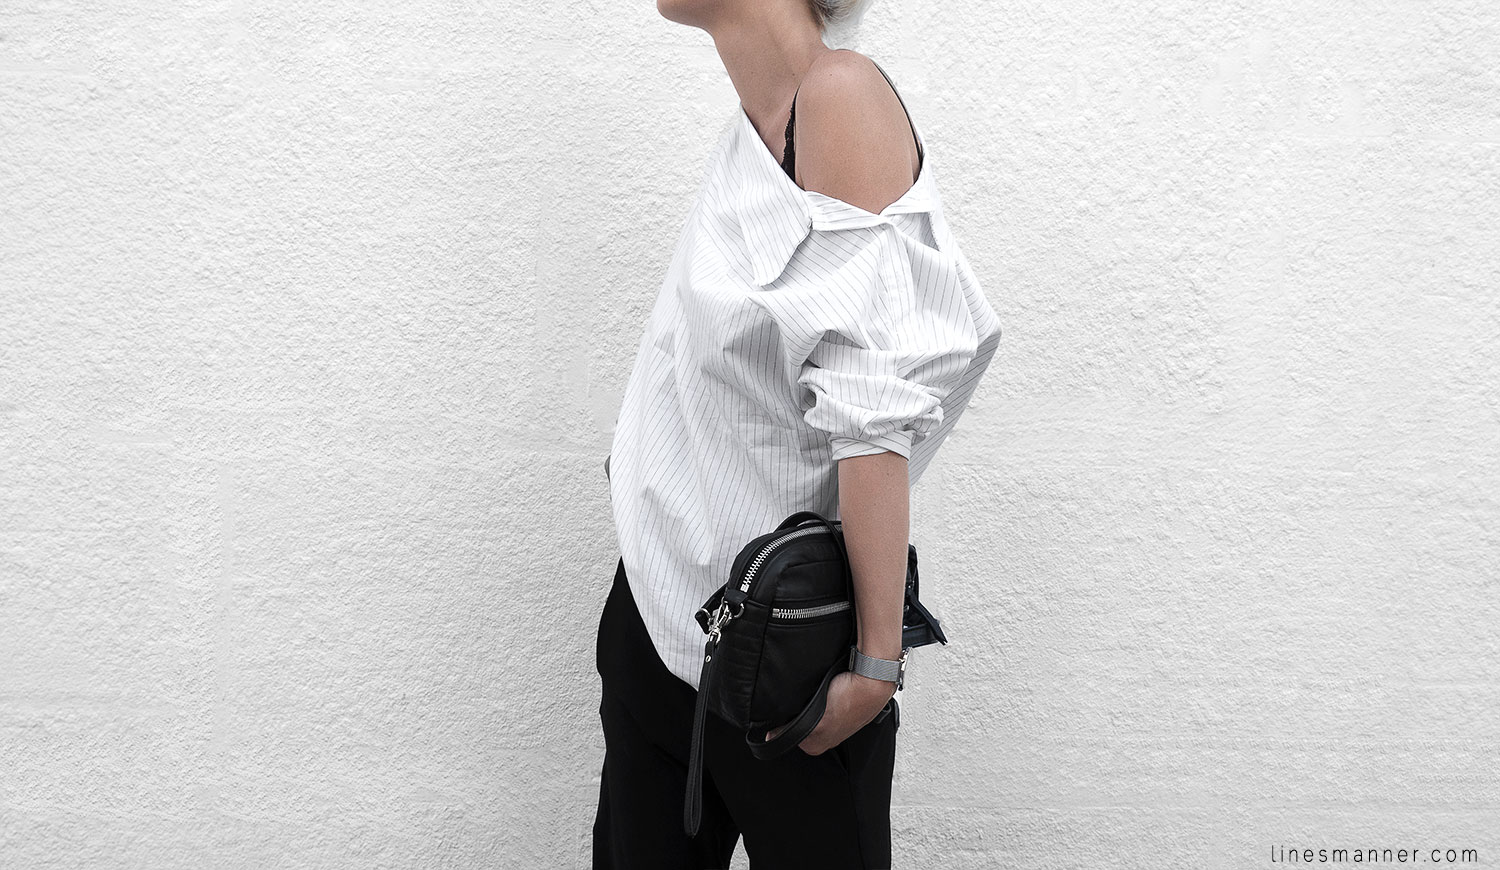 Lines-Manner-Simplicity-Off_shoulder-Monochrome-Noway_Monday-Details-Edgy6Backward-Sleek Statement_piece-Pinstripe-Business-Shirt-Minimal-Essentials-Outfit-Fashion-Minimal_fashion-Slides-Everlane-7